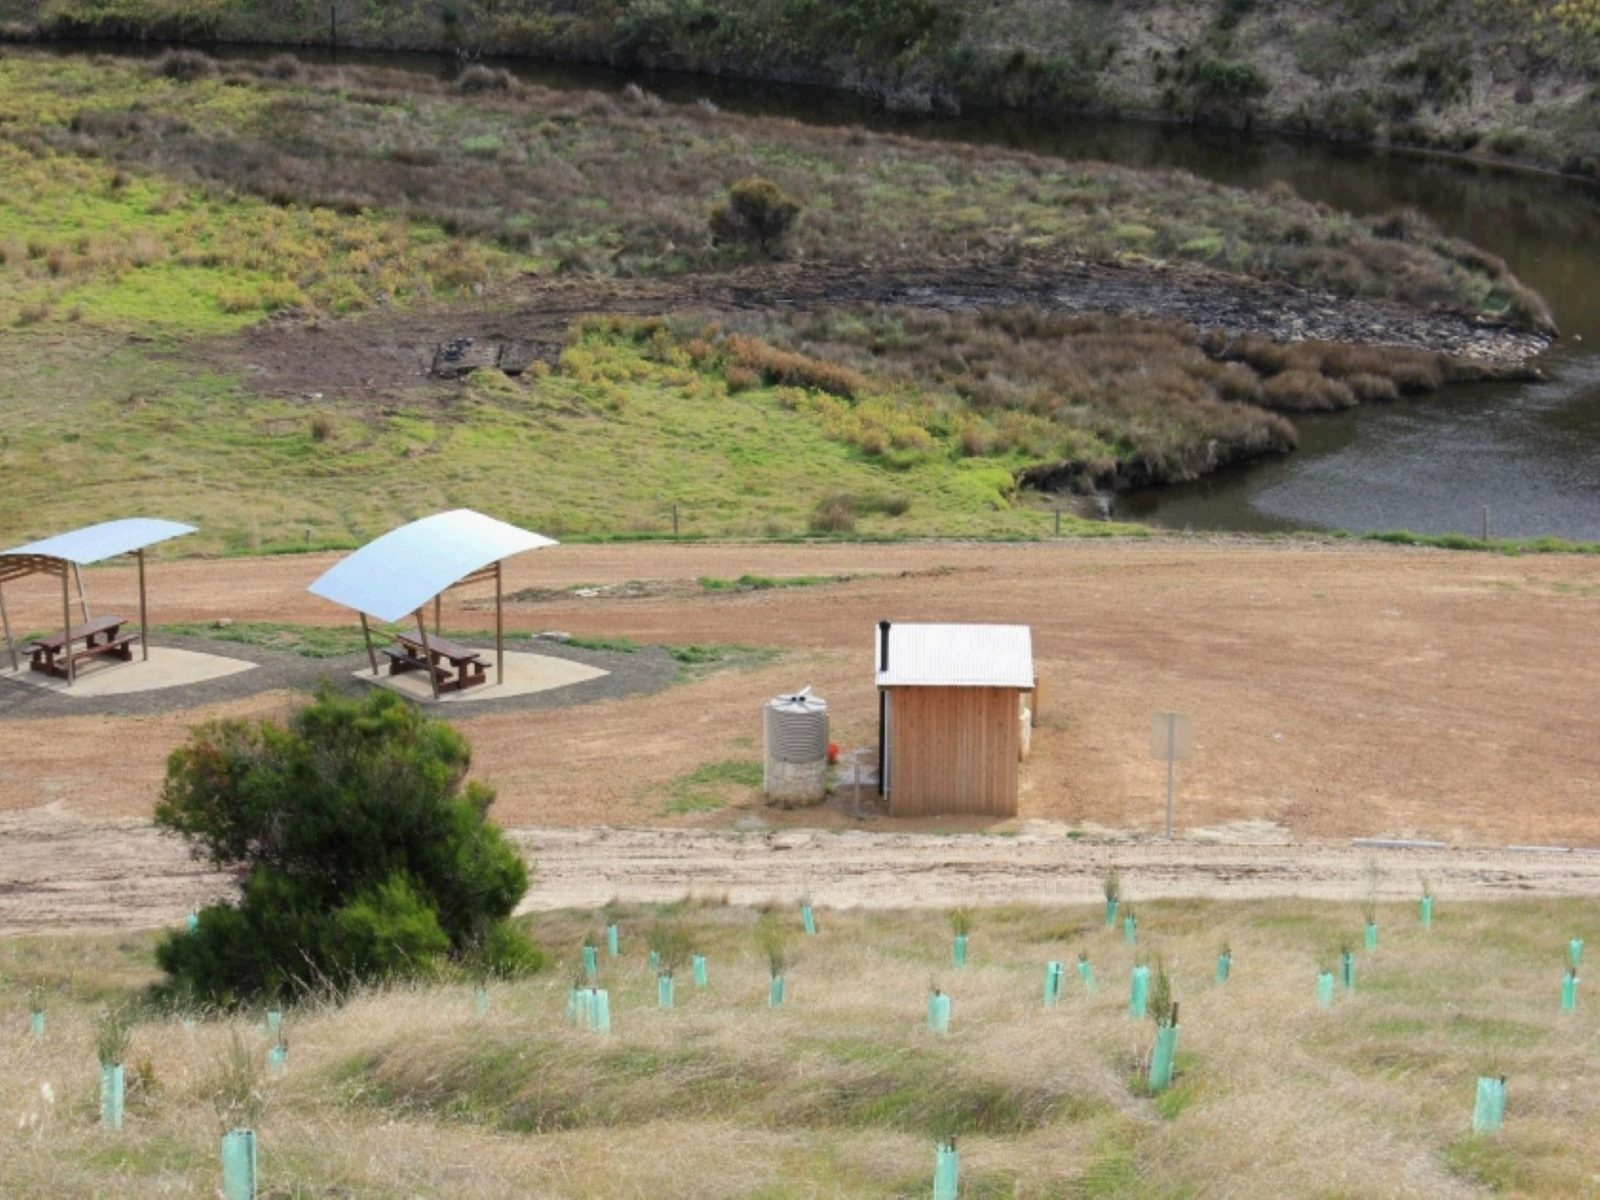 Western River Cove Camp Ground